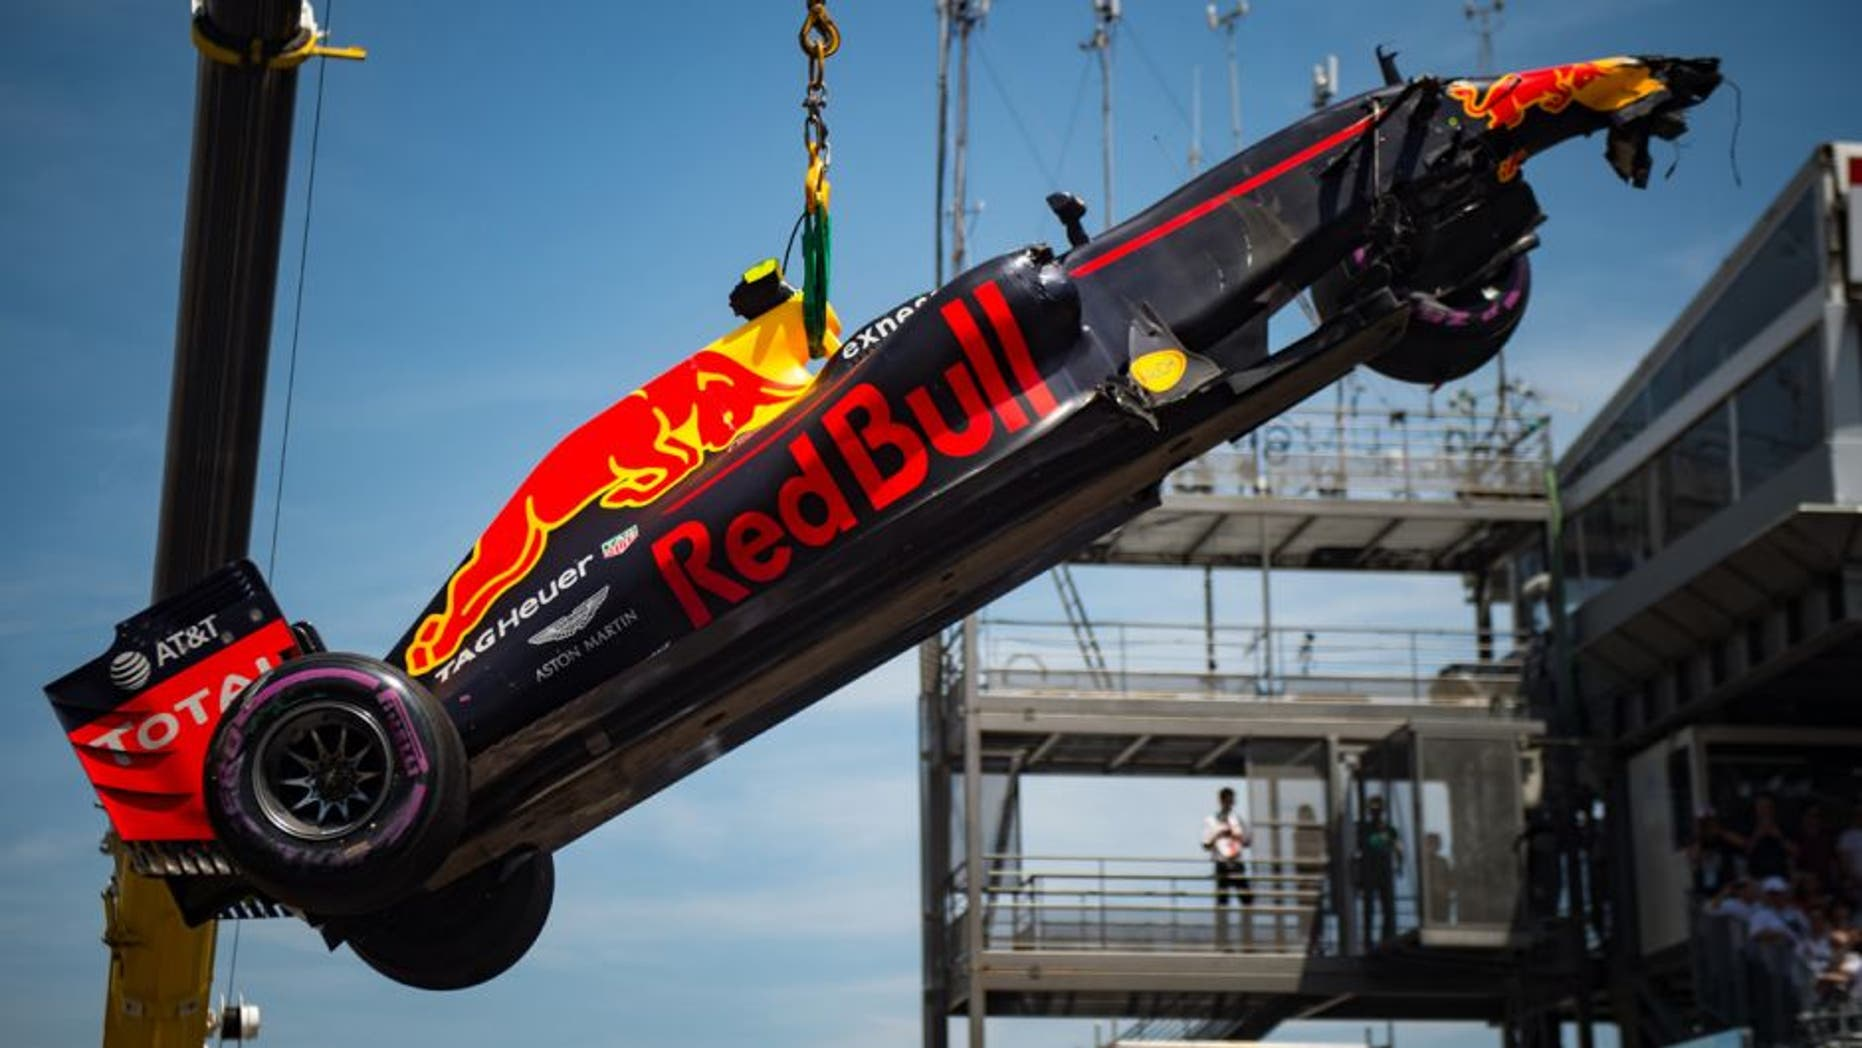 A crane lifts the car of Infiniti Red Bull Racing's Belgian-Dutch driver Max Verstappen after his crash during the qualifying session at the at the Monaco street circuit, on May 28, 2016 in Monaco, one day ahead of the Monaco Formula 1 Grand Prix. / AFP / POOL / ANDREJ ISAKOVIC (Photo credit should read ANDREJ ISAKOVIC/AFP/Getty Images)